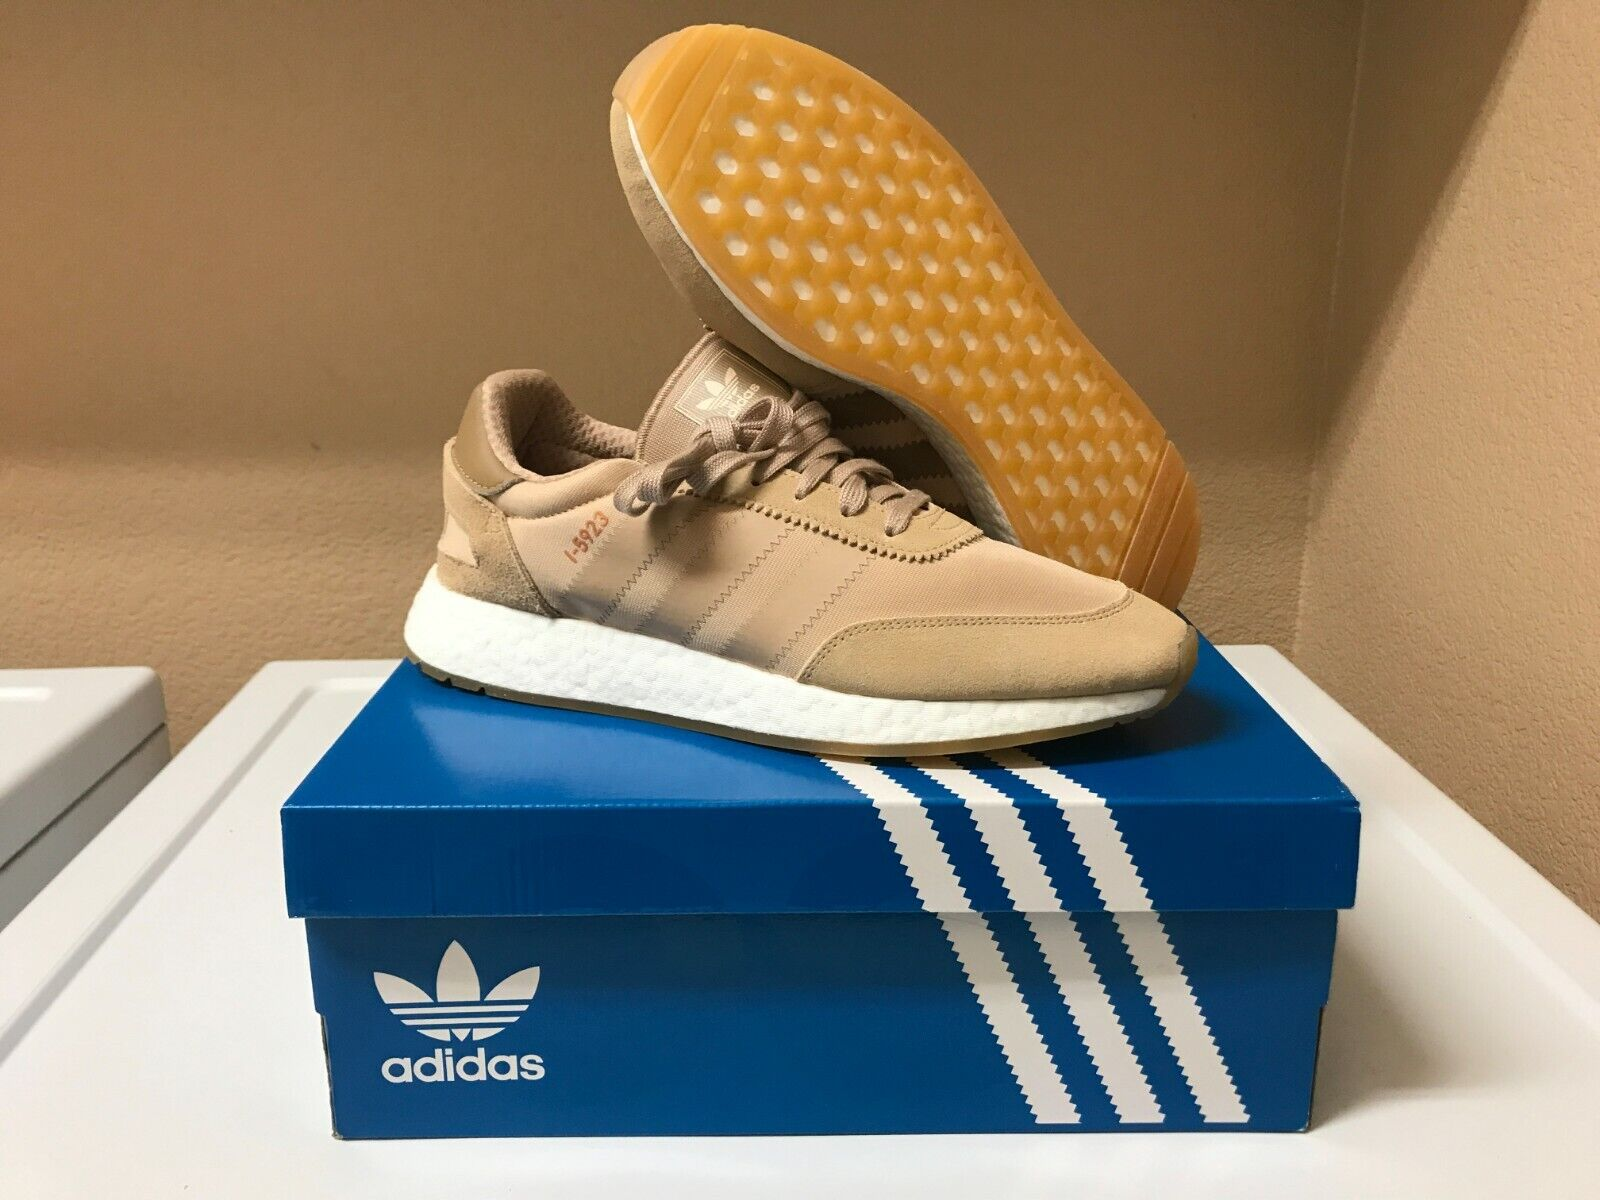 newest collection b679b 6f58b Adidas I-5923 Runner Sneakersnstuff Pale Nude Gum Boost Men s 10